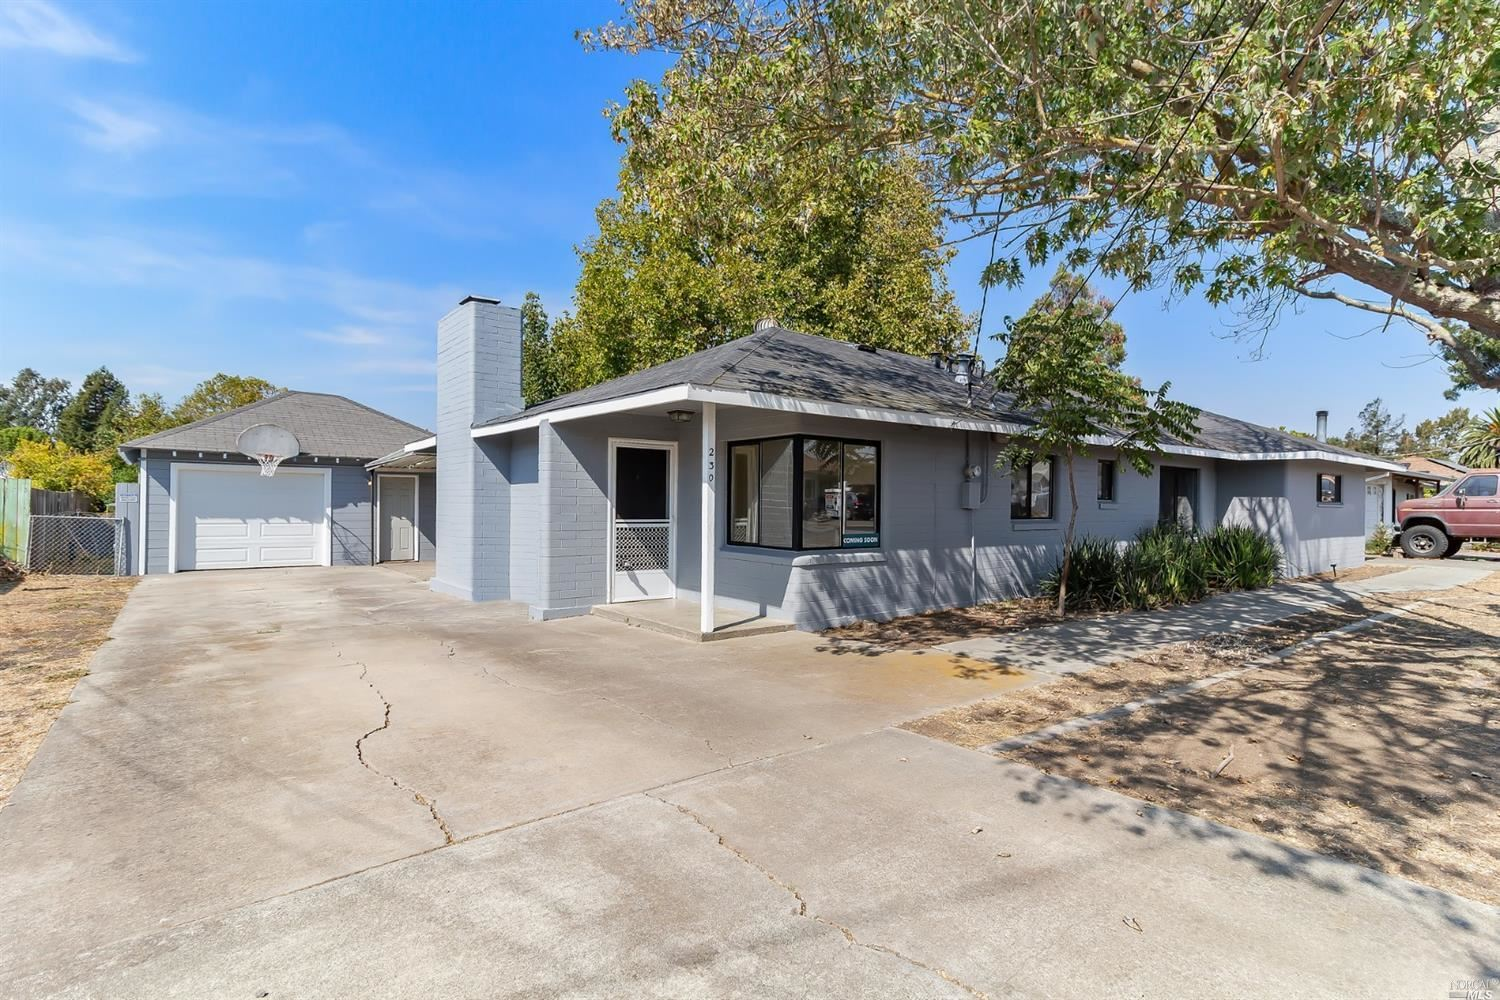 230 Andrew Road, American Canyon, CA 94503 - MLS#: 321093239